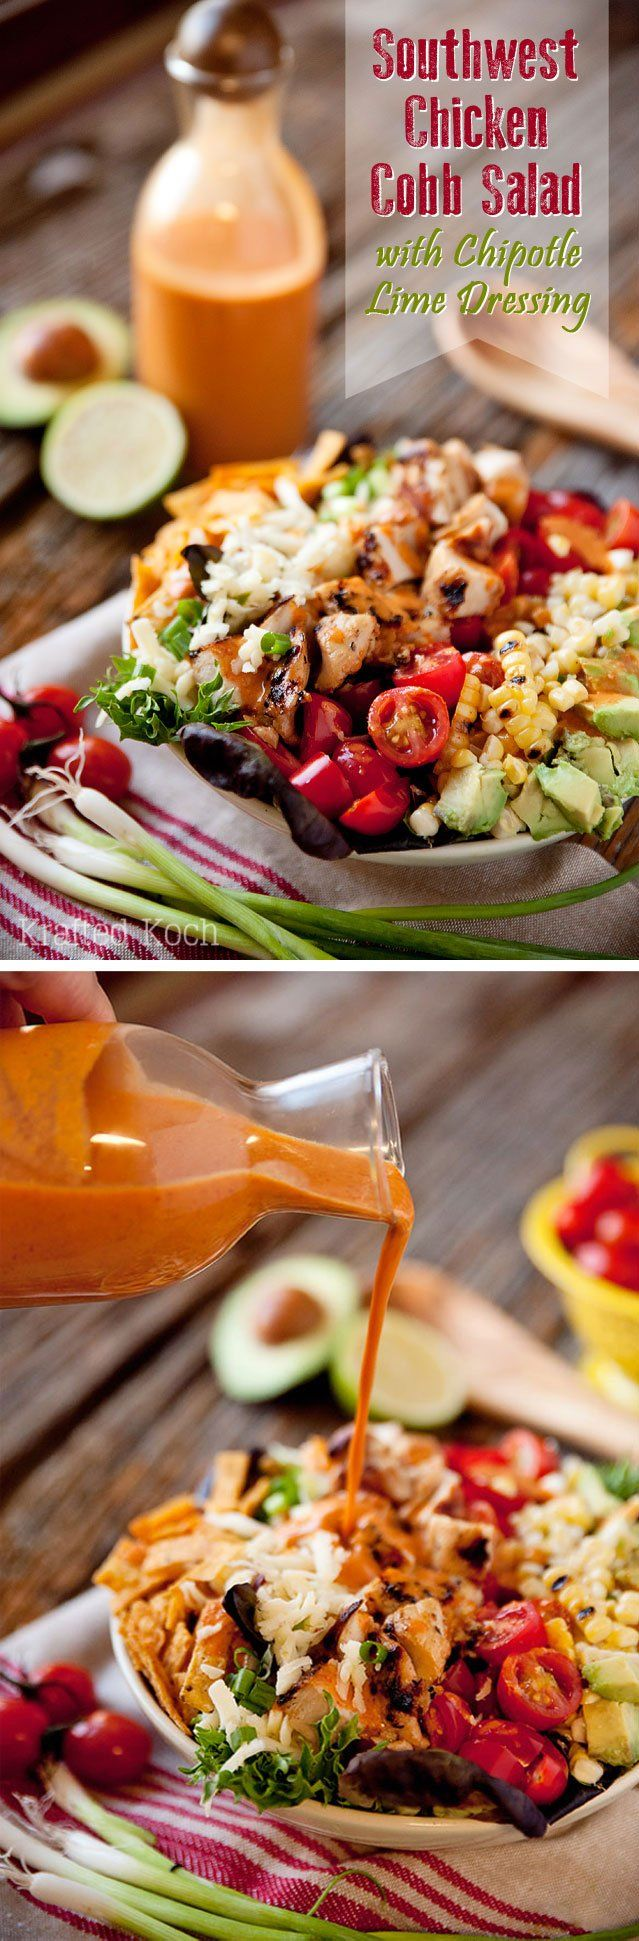 Chipotle Lime Southwest Dressing - Krafted Koch - Loaded with fresh vegetables and grilled chicken, this salad is bold and flavorful!